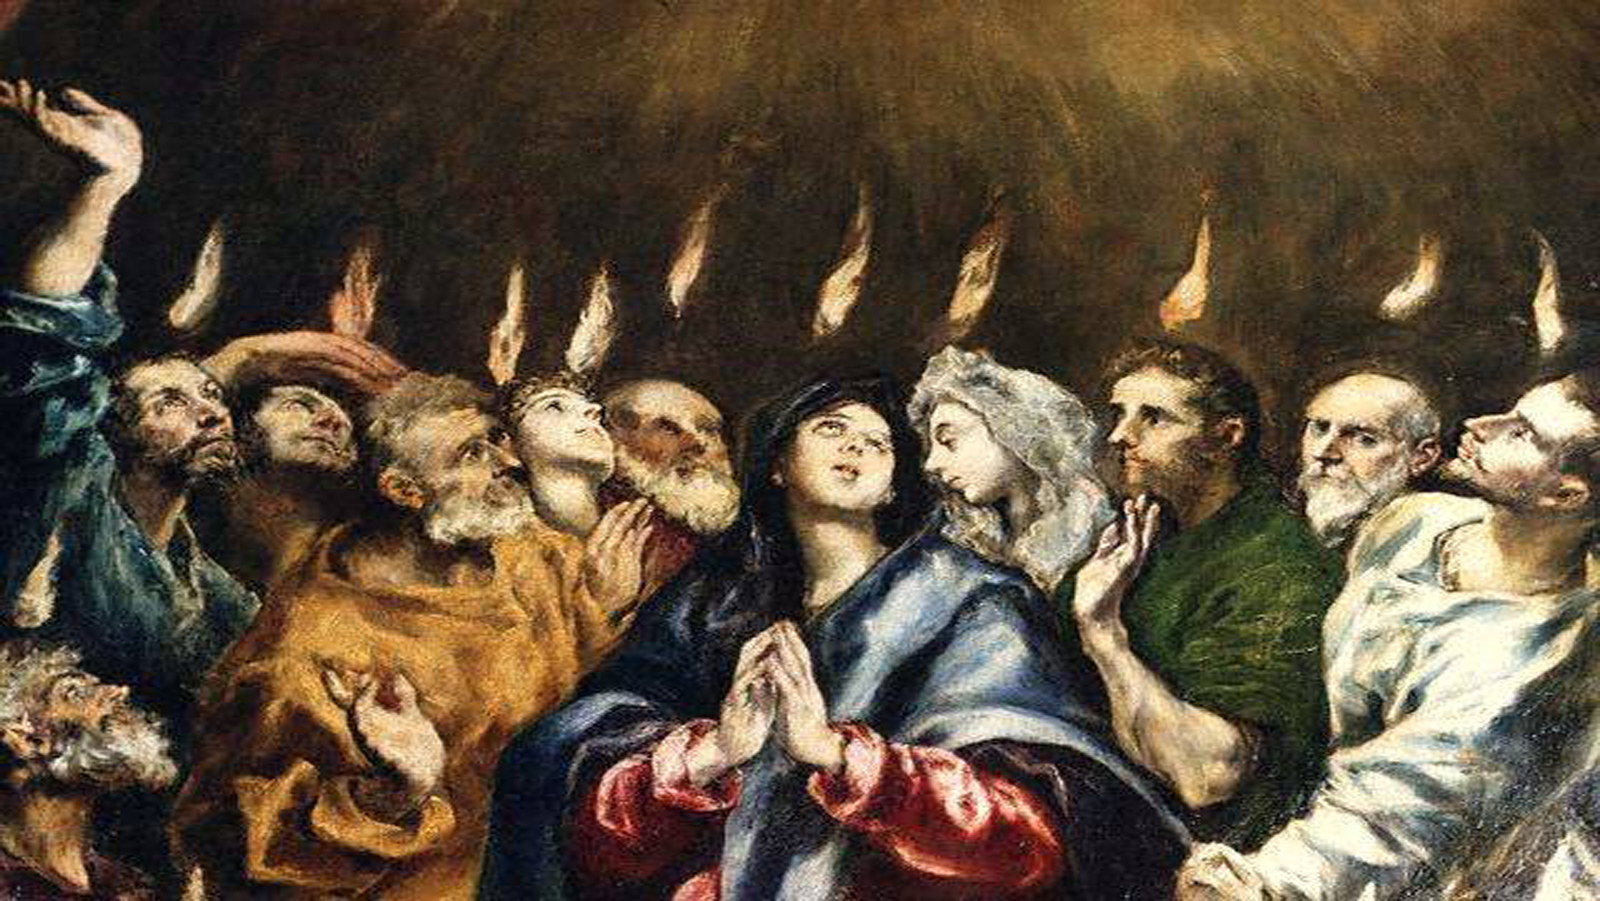 pentecost - photo #36